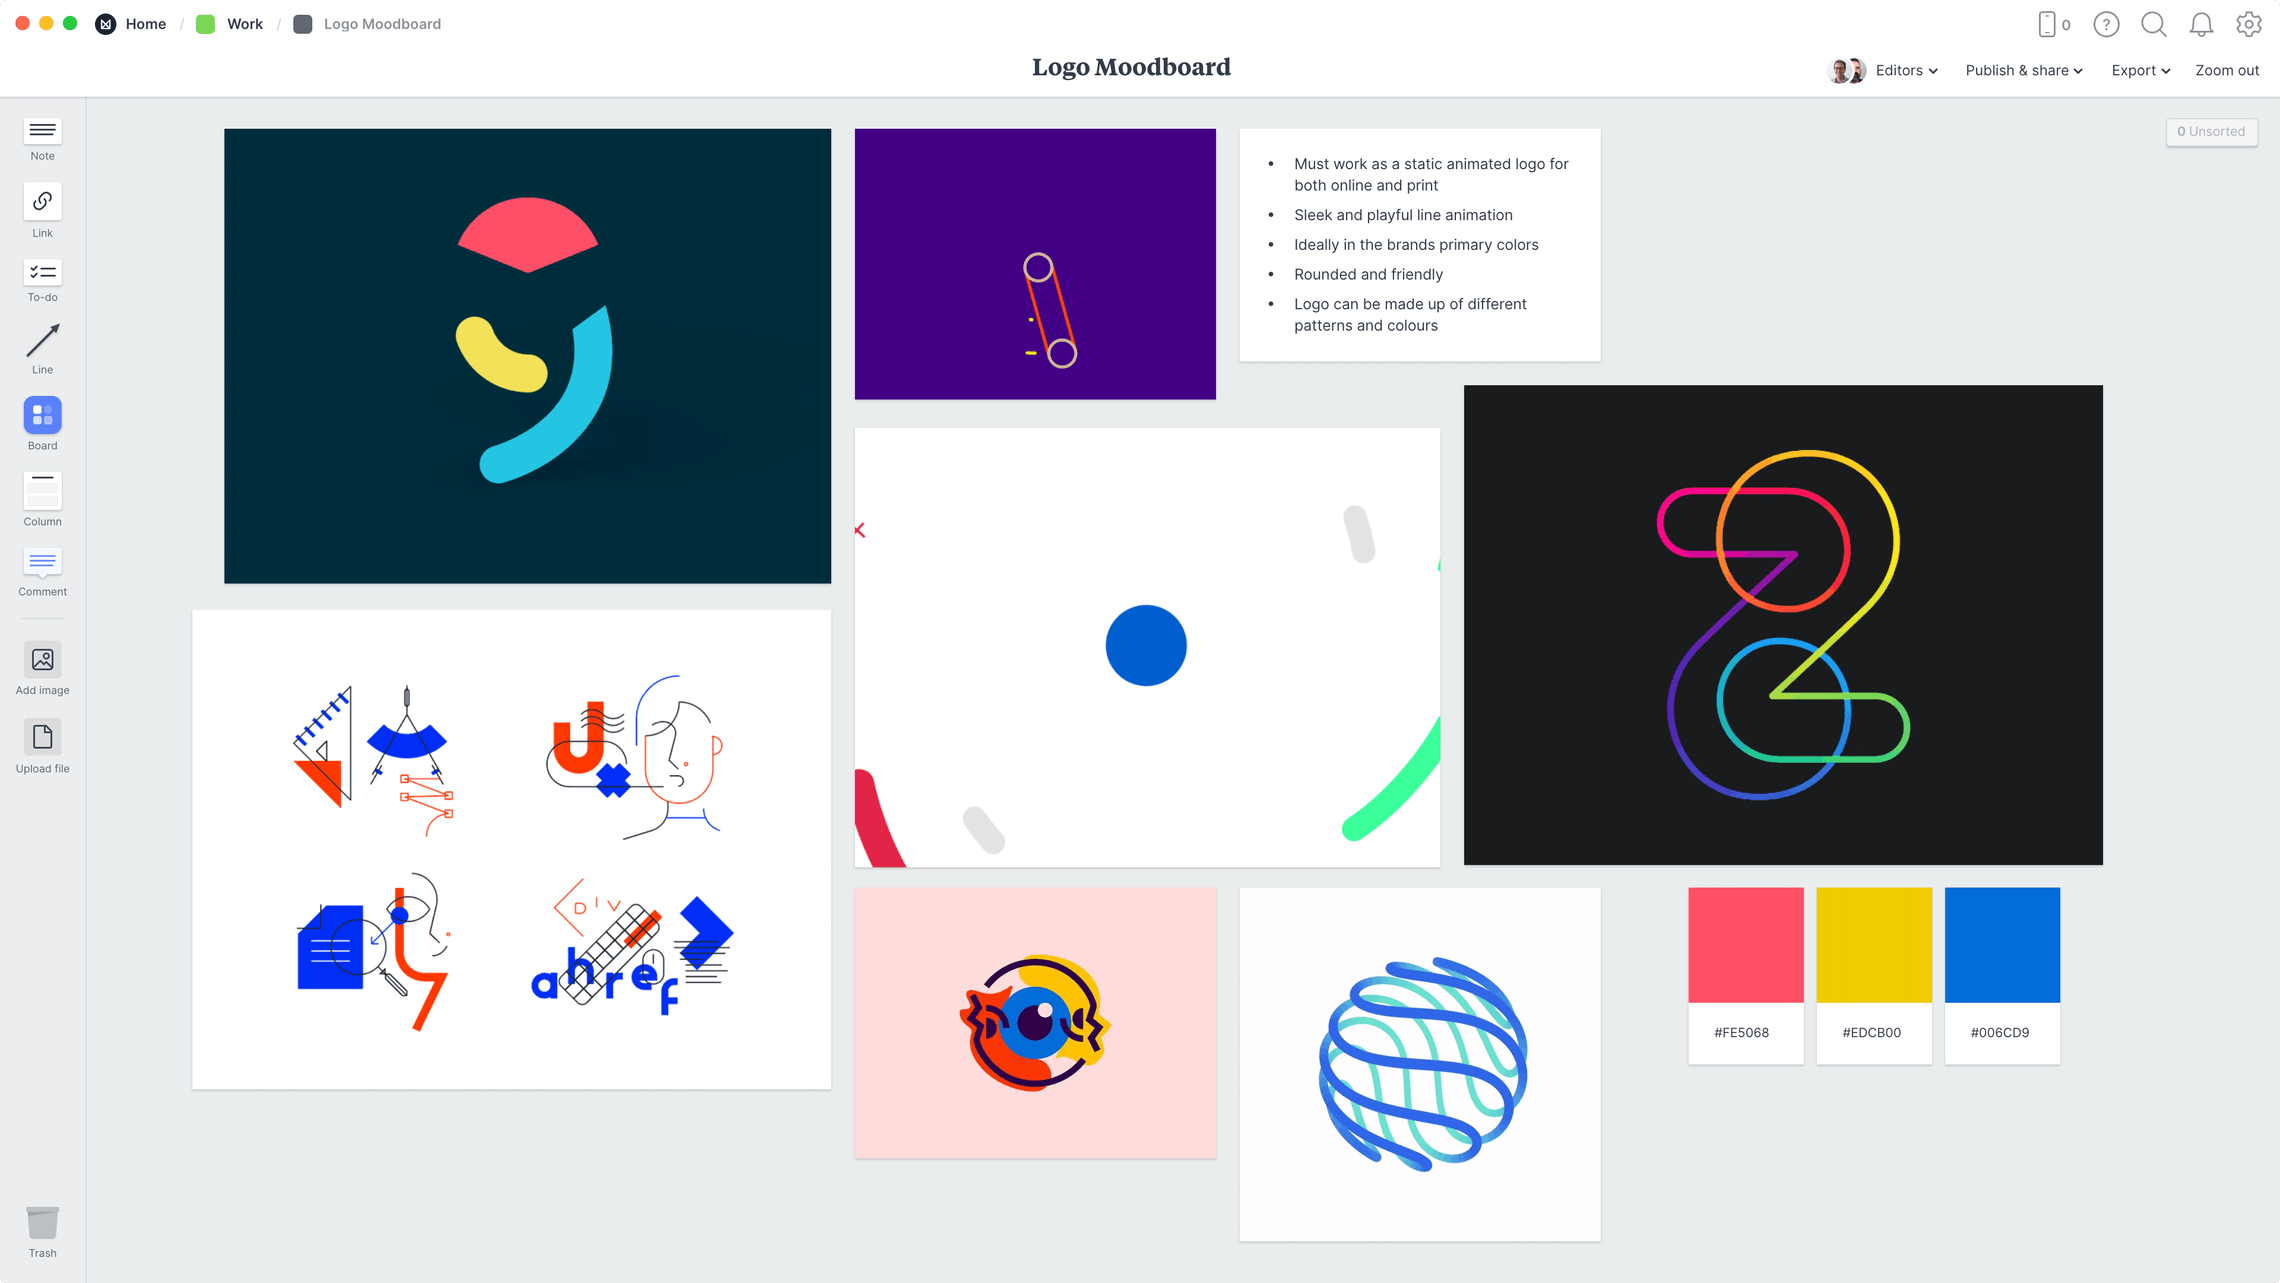 Logo Moodboard Template, within the Milanote app